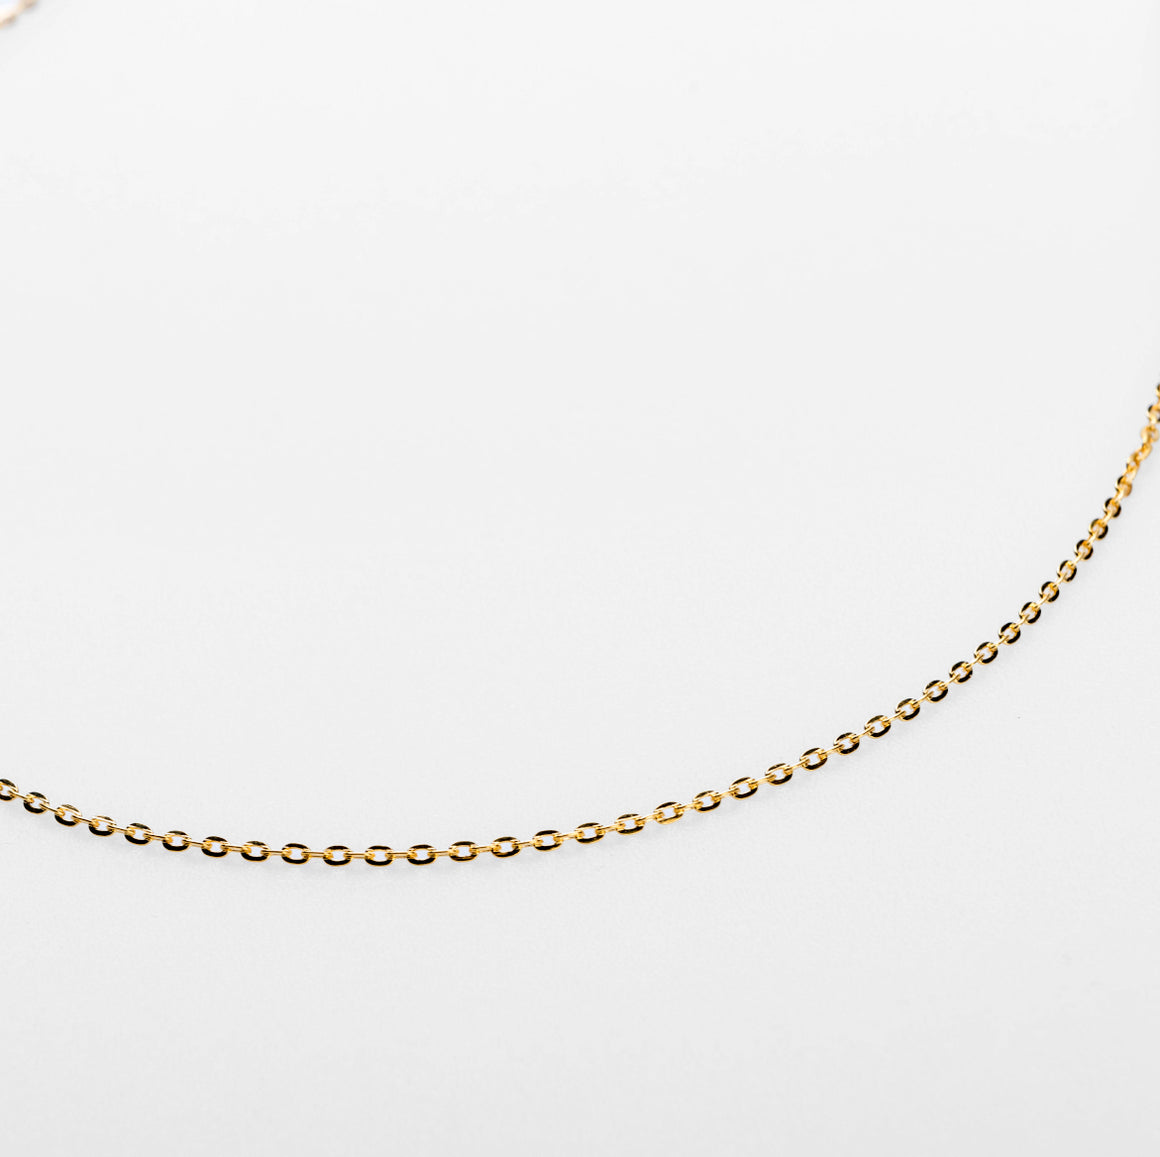 KEENA STAPLE NECKLACE CHAIN | GOLD